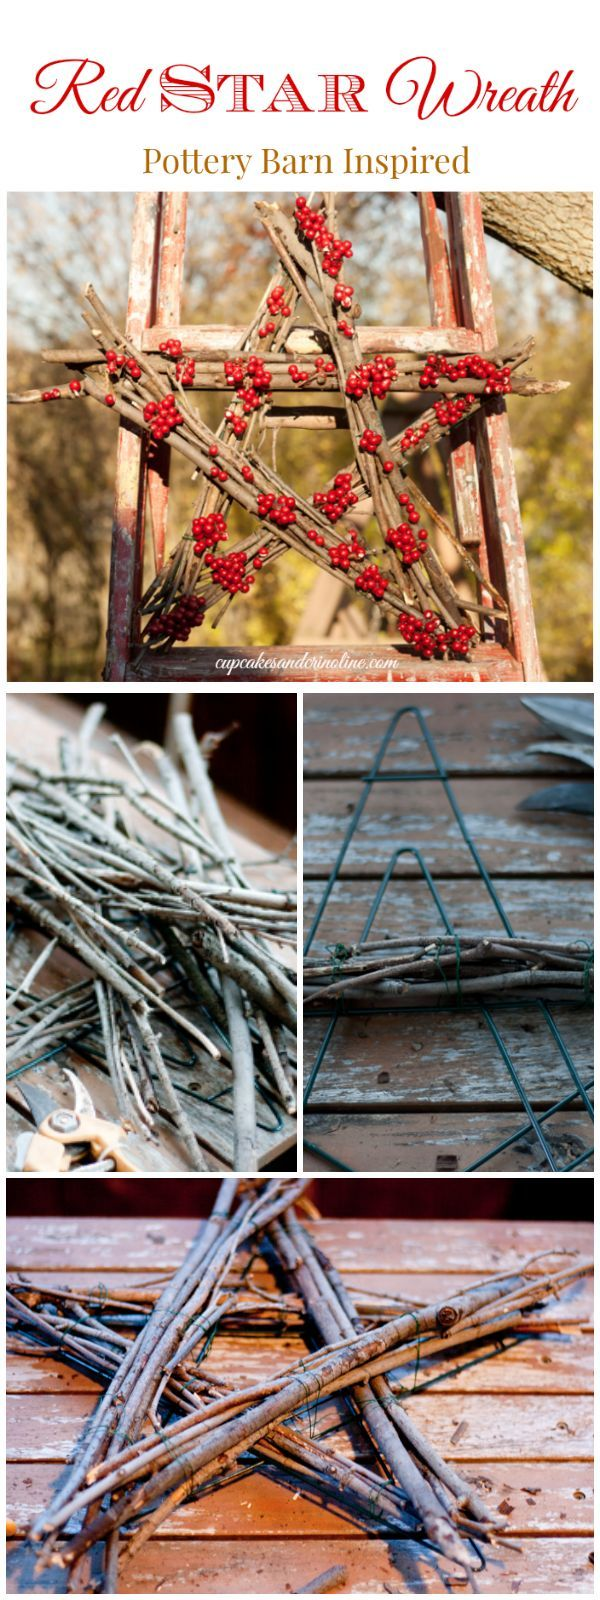 Twig and berry star wreath - very easy to make and a wonderful rustic addition to Christmas decor - Pottery Barn Inspired from cupcakesandcrinoline.com